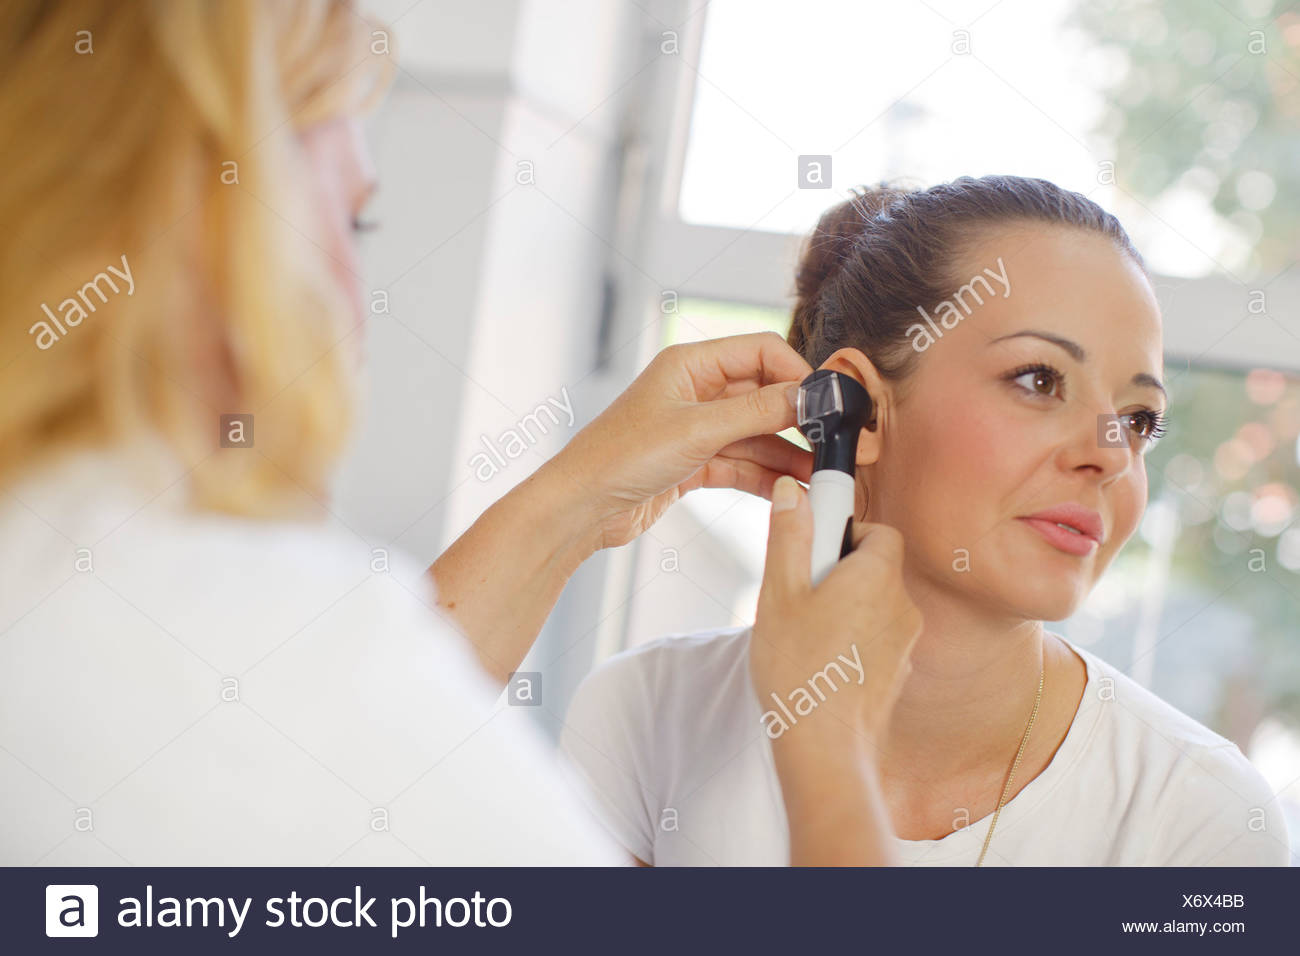 ENT physician Examining the Ear from Female Patient - Stock Image